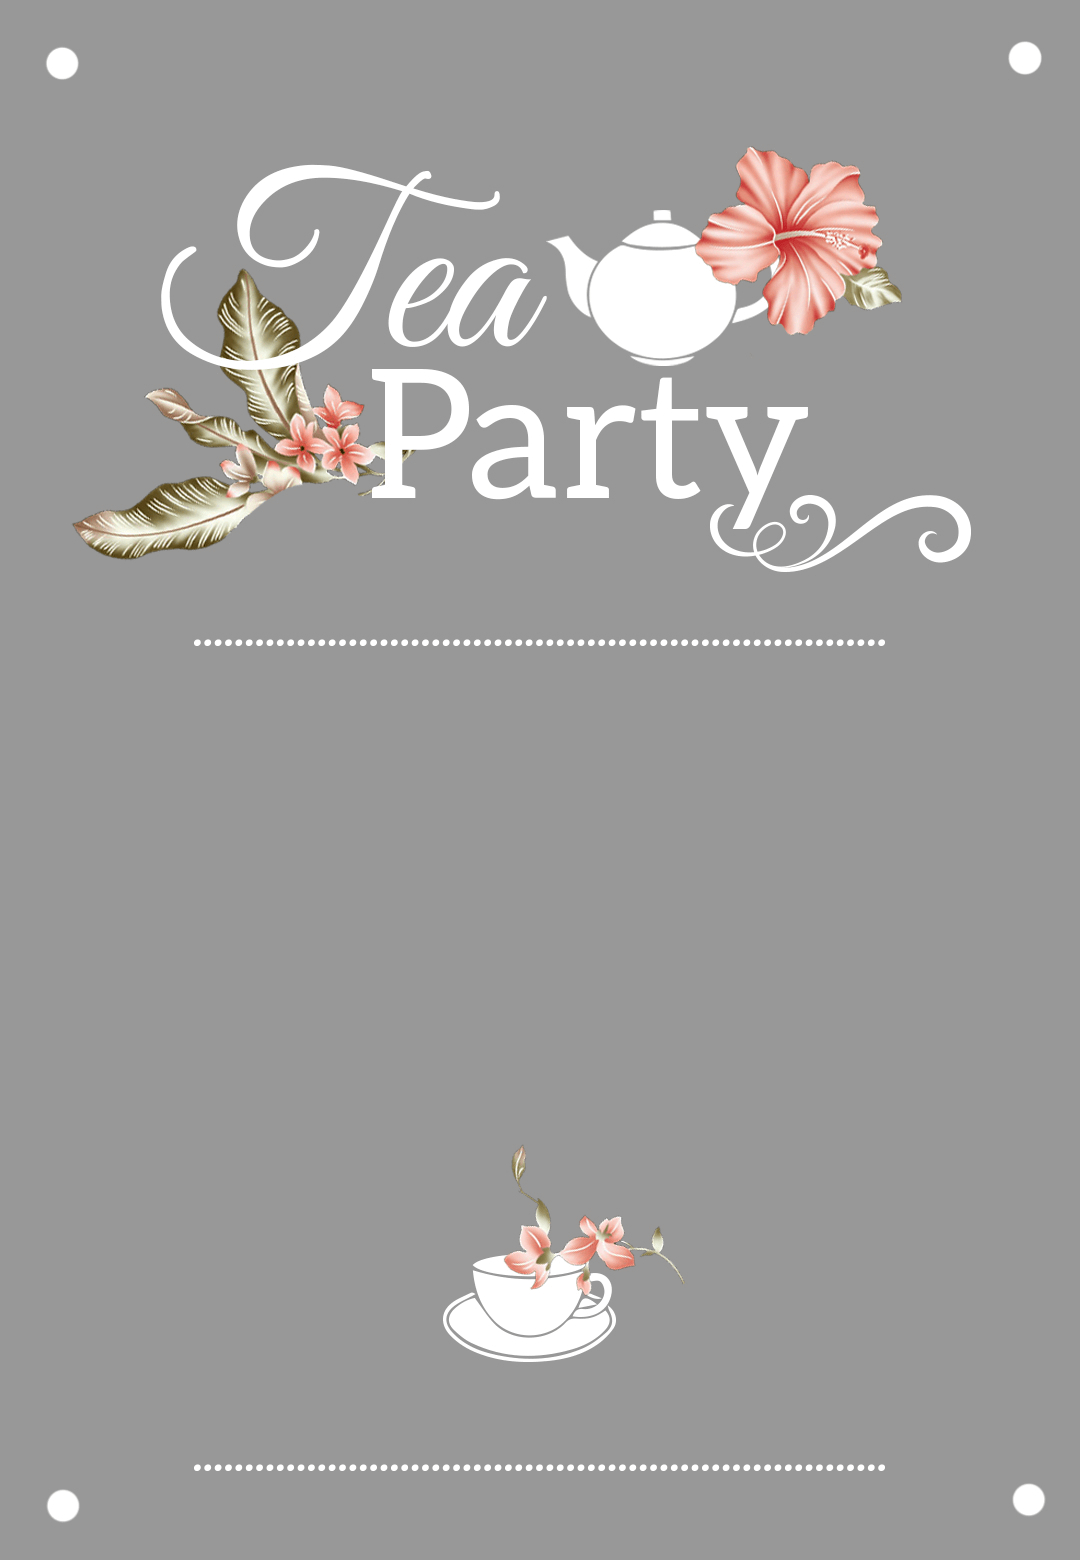 Bridal Shower Tea Party - Free Printable Bridal Shower Invitation - Free Printable Kitchen Tea Invitation Templates